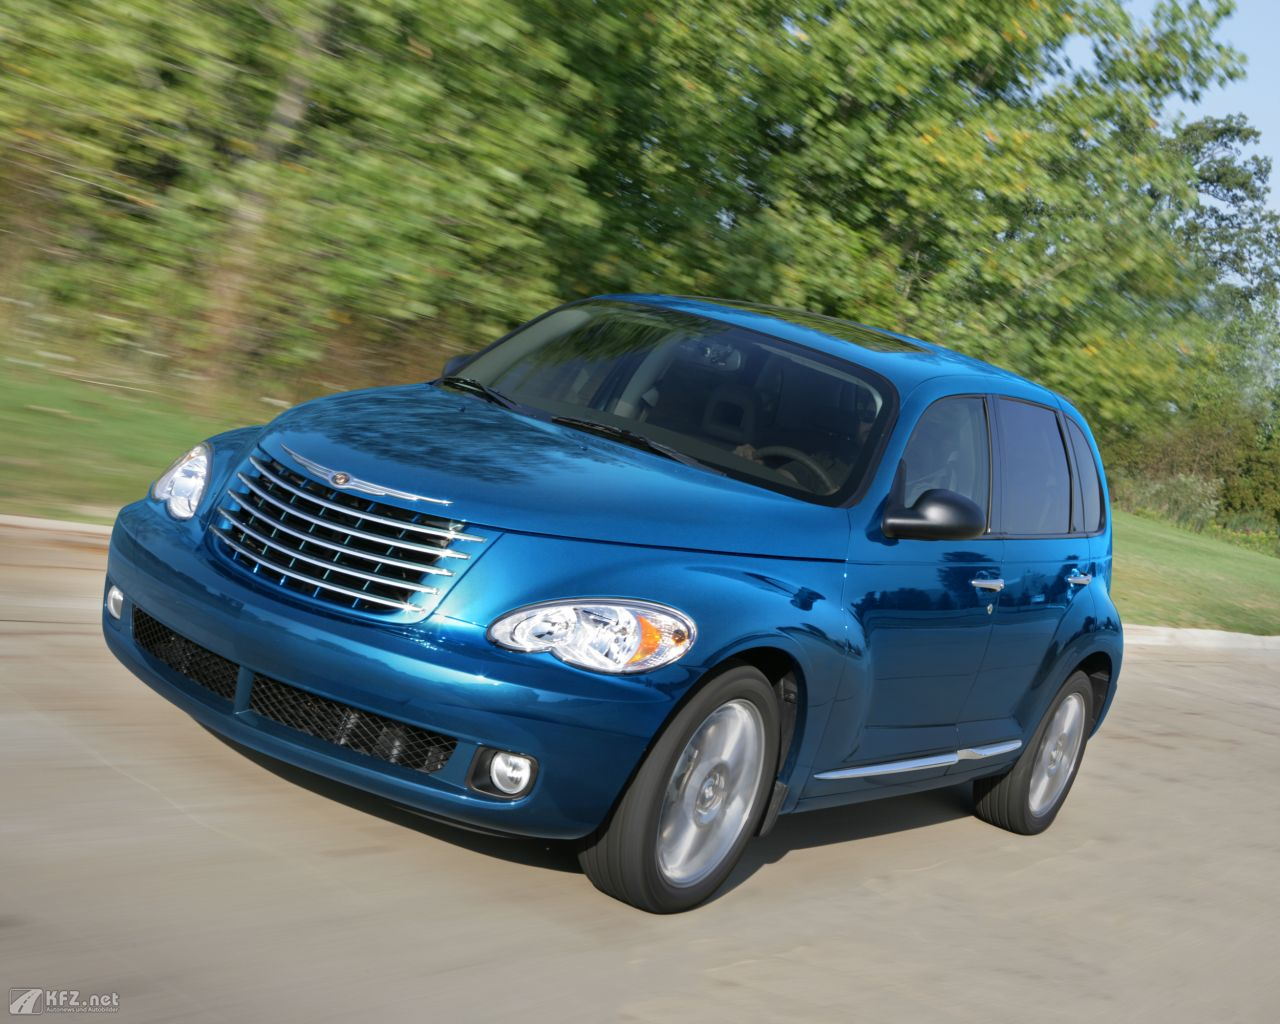 chrysler-pt-cruiser-1280x1024-18